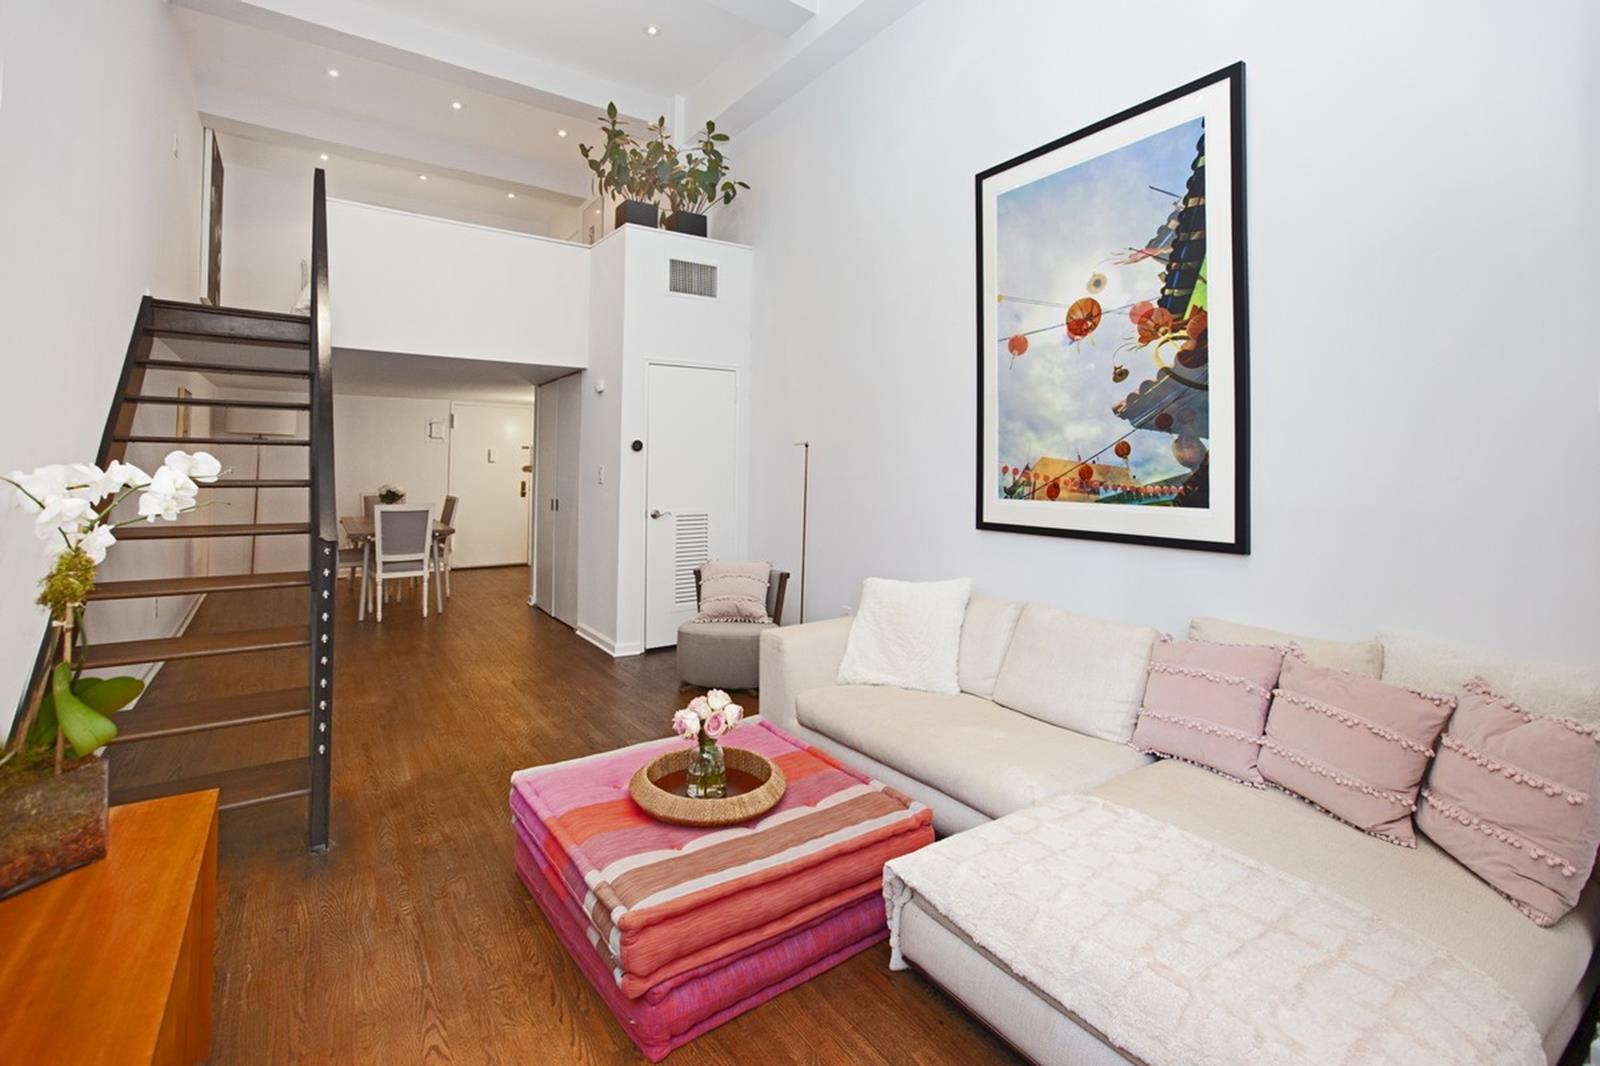 Soaring 15 foot ceilings greet you as you enter this stunning duplex nestled on the 5th floor of the iconic Printing House in the coveted West Village! As you enter your new home, you will find a fully equipped chefs kitchen to the left, complete with gas range, oven and dishwasher, custom cabinetry and granite countertop. To the right you will find a spacious dining area, roomy enough to accommodate a large dining table with seating for 8-10! Continue past the large closet and beautiful guest bath into to the jaw dropping living room with double height windows and contemporary staircase leading to the king sized, pin-drop quiet bedroom featuring home office, expansive walk in closet, and private bath with shower and linen cabinet.The Printing house is a full service luxury condominium with low maintenance fees, concierge and valet located in the heart of the West Village on Hudson and Leroy Streets, surrounded by parks, restaurants, nightlife, premiere shopping, the Hudson River Esplanade and everything the amazing West Village has to offer!In addition, the flagship Printing House Equinox Gym is located within the building, complete with legendary outdoor swimming pool on the roof!